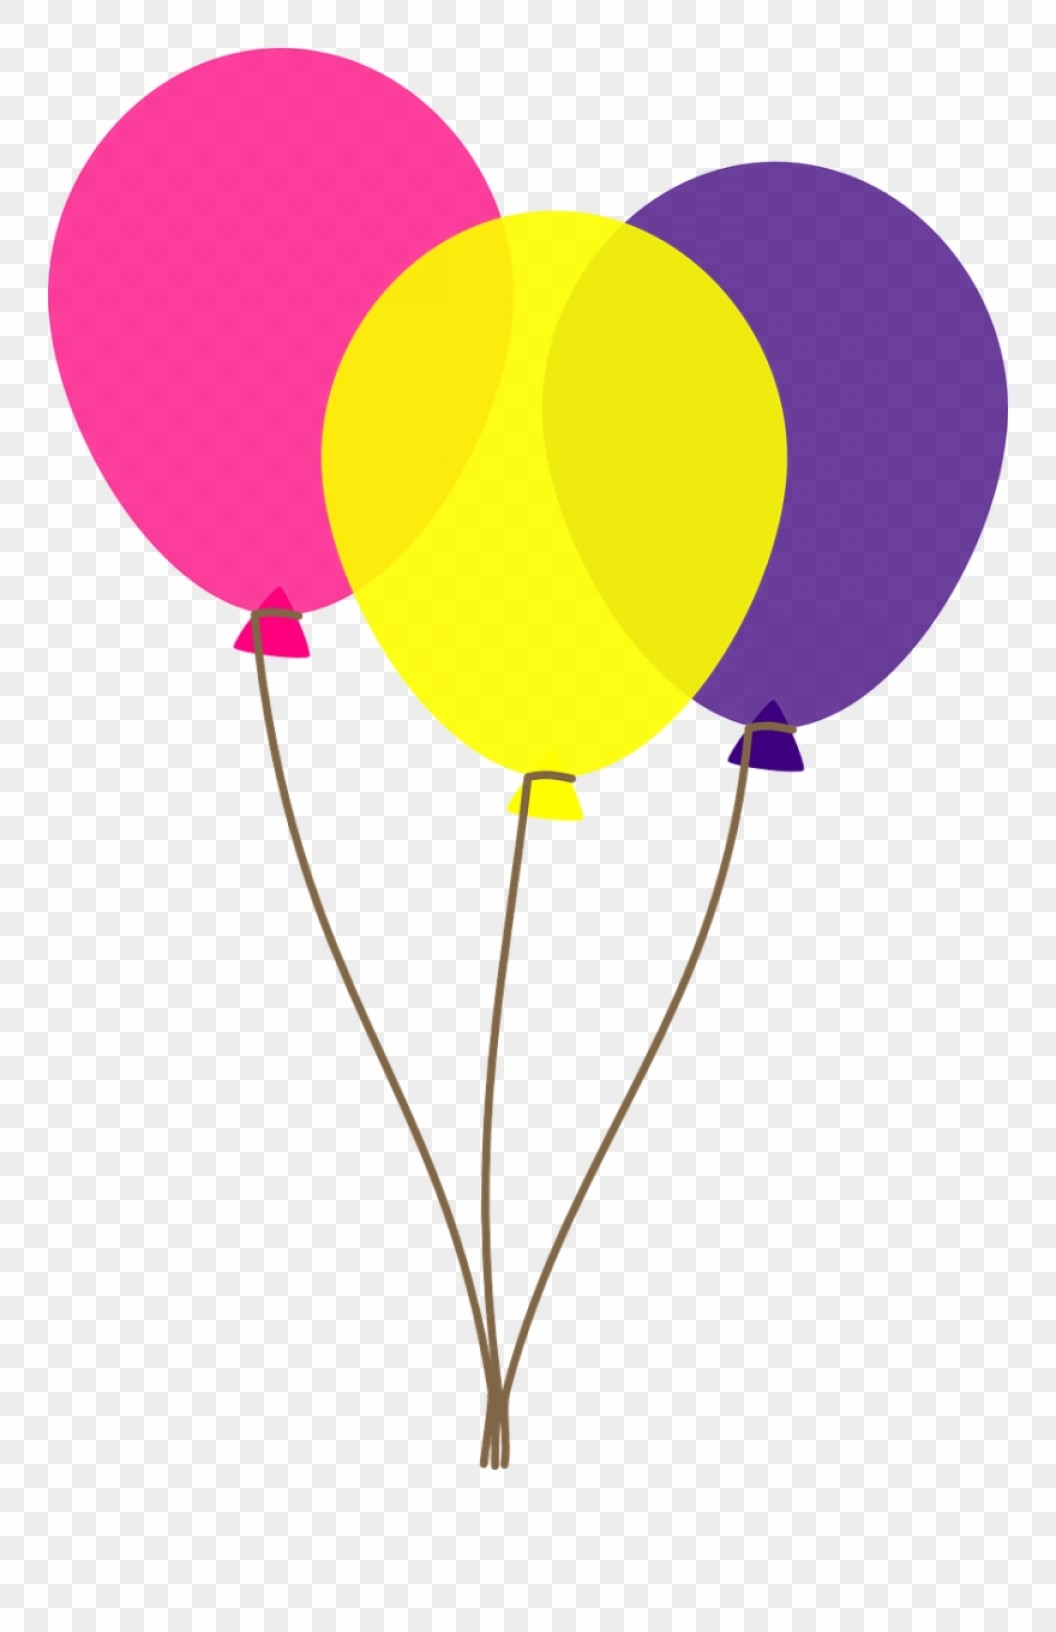 Balloon clipart free download vector transparent library Immwmvector Library Clip Art Free Download Balloon Clipart | lamaison vector transparent library